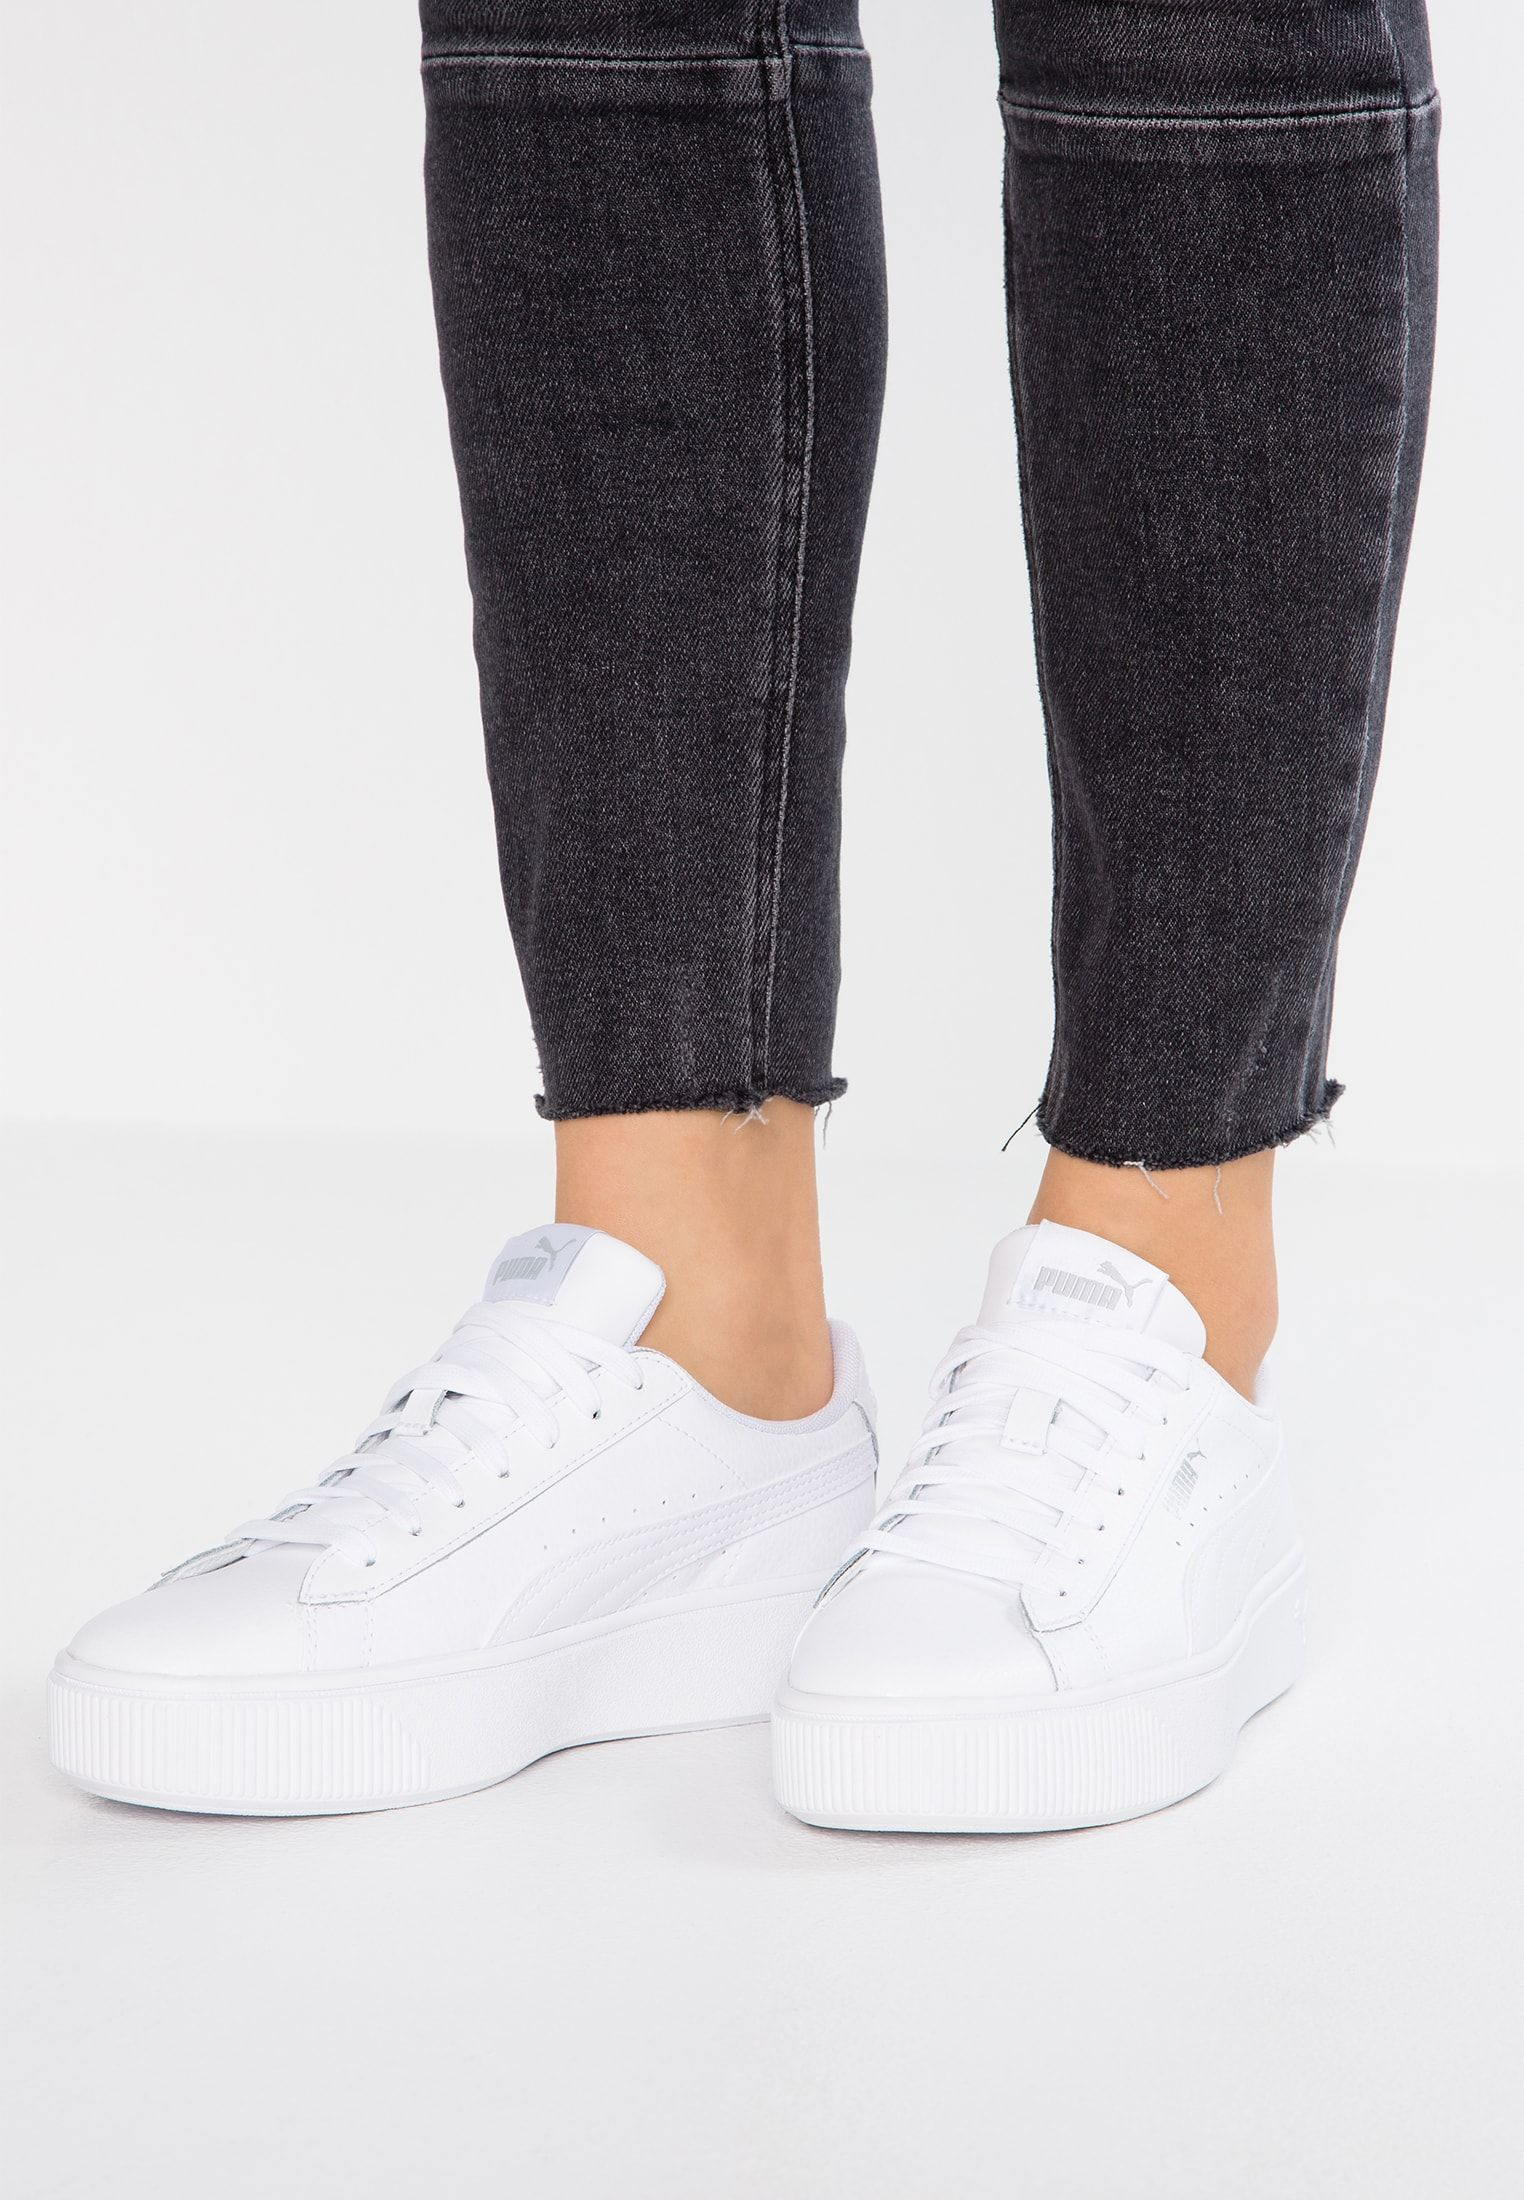 Stacked Vikky Low Stacked White Vikky Sneaker Sneaker eCBdWrxQo